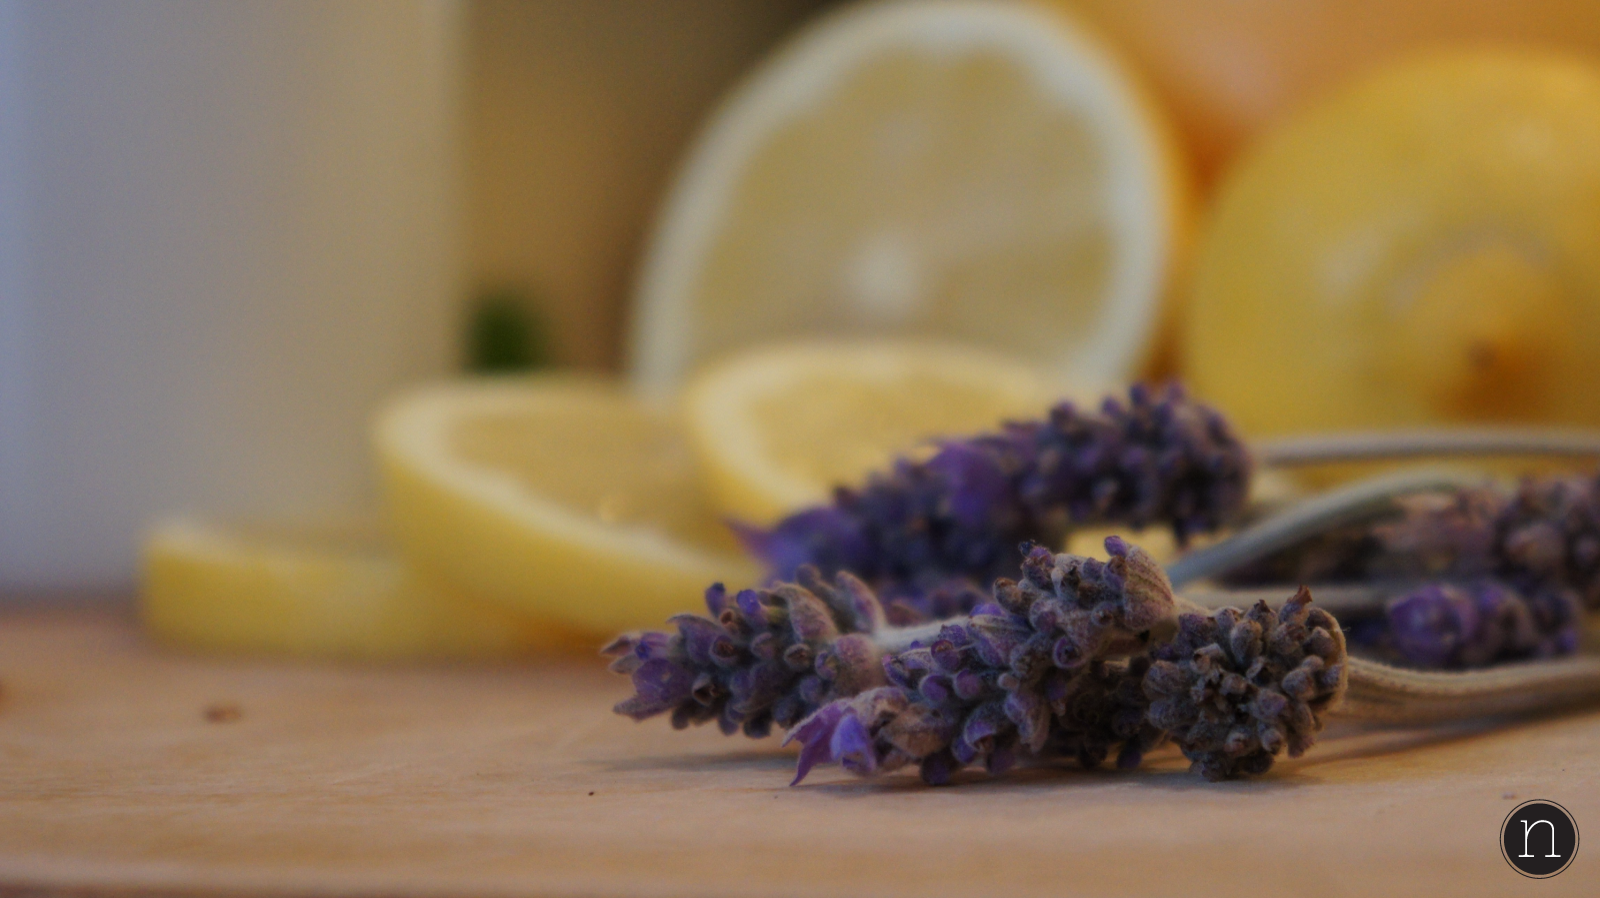 nuepura is always made with the freshest and purest ingredients. Lemon and Lavender are a couple of our favorites!